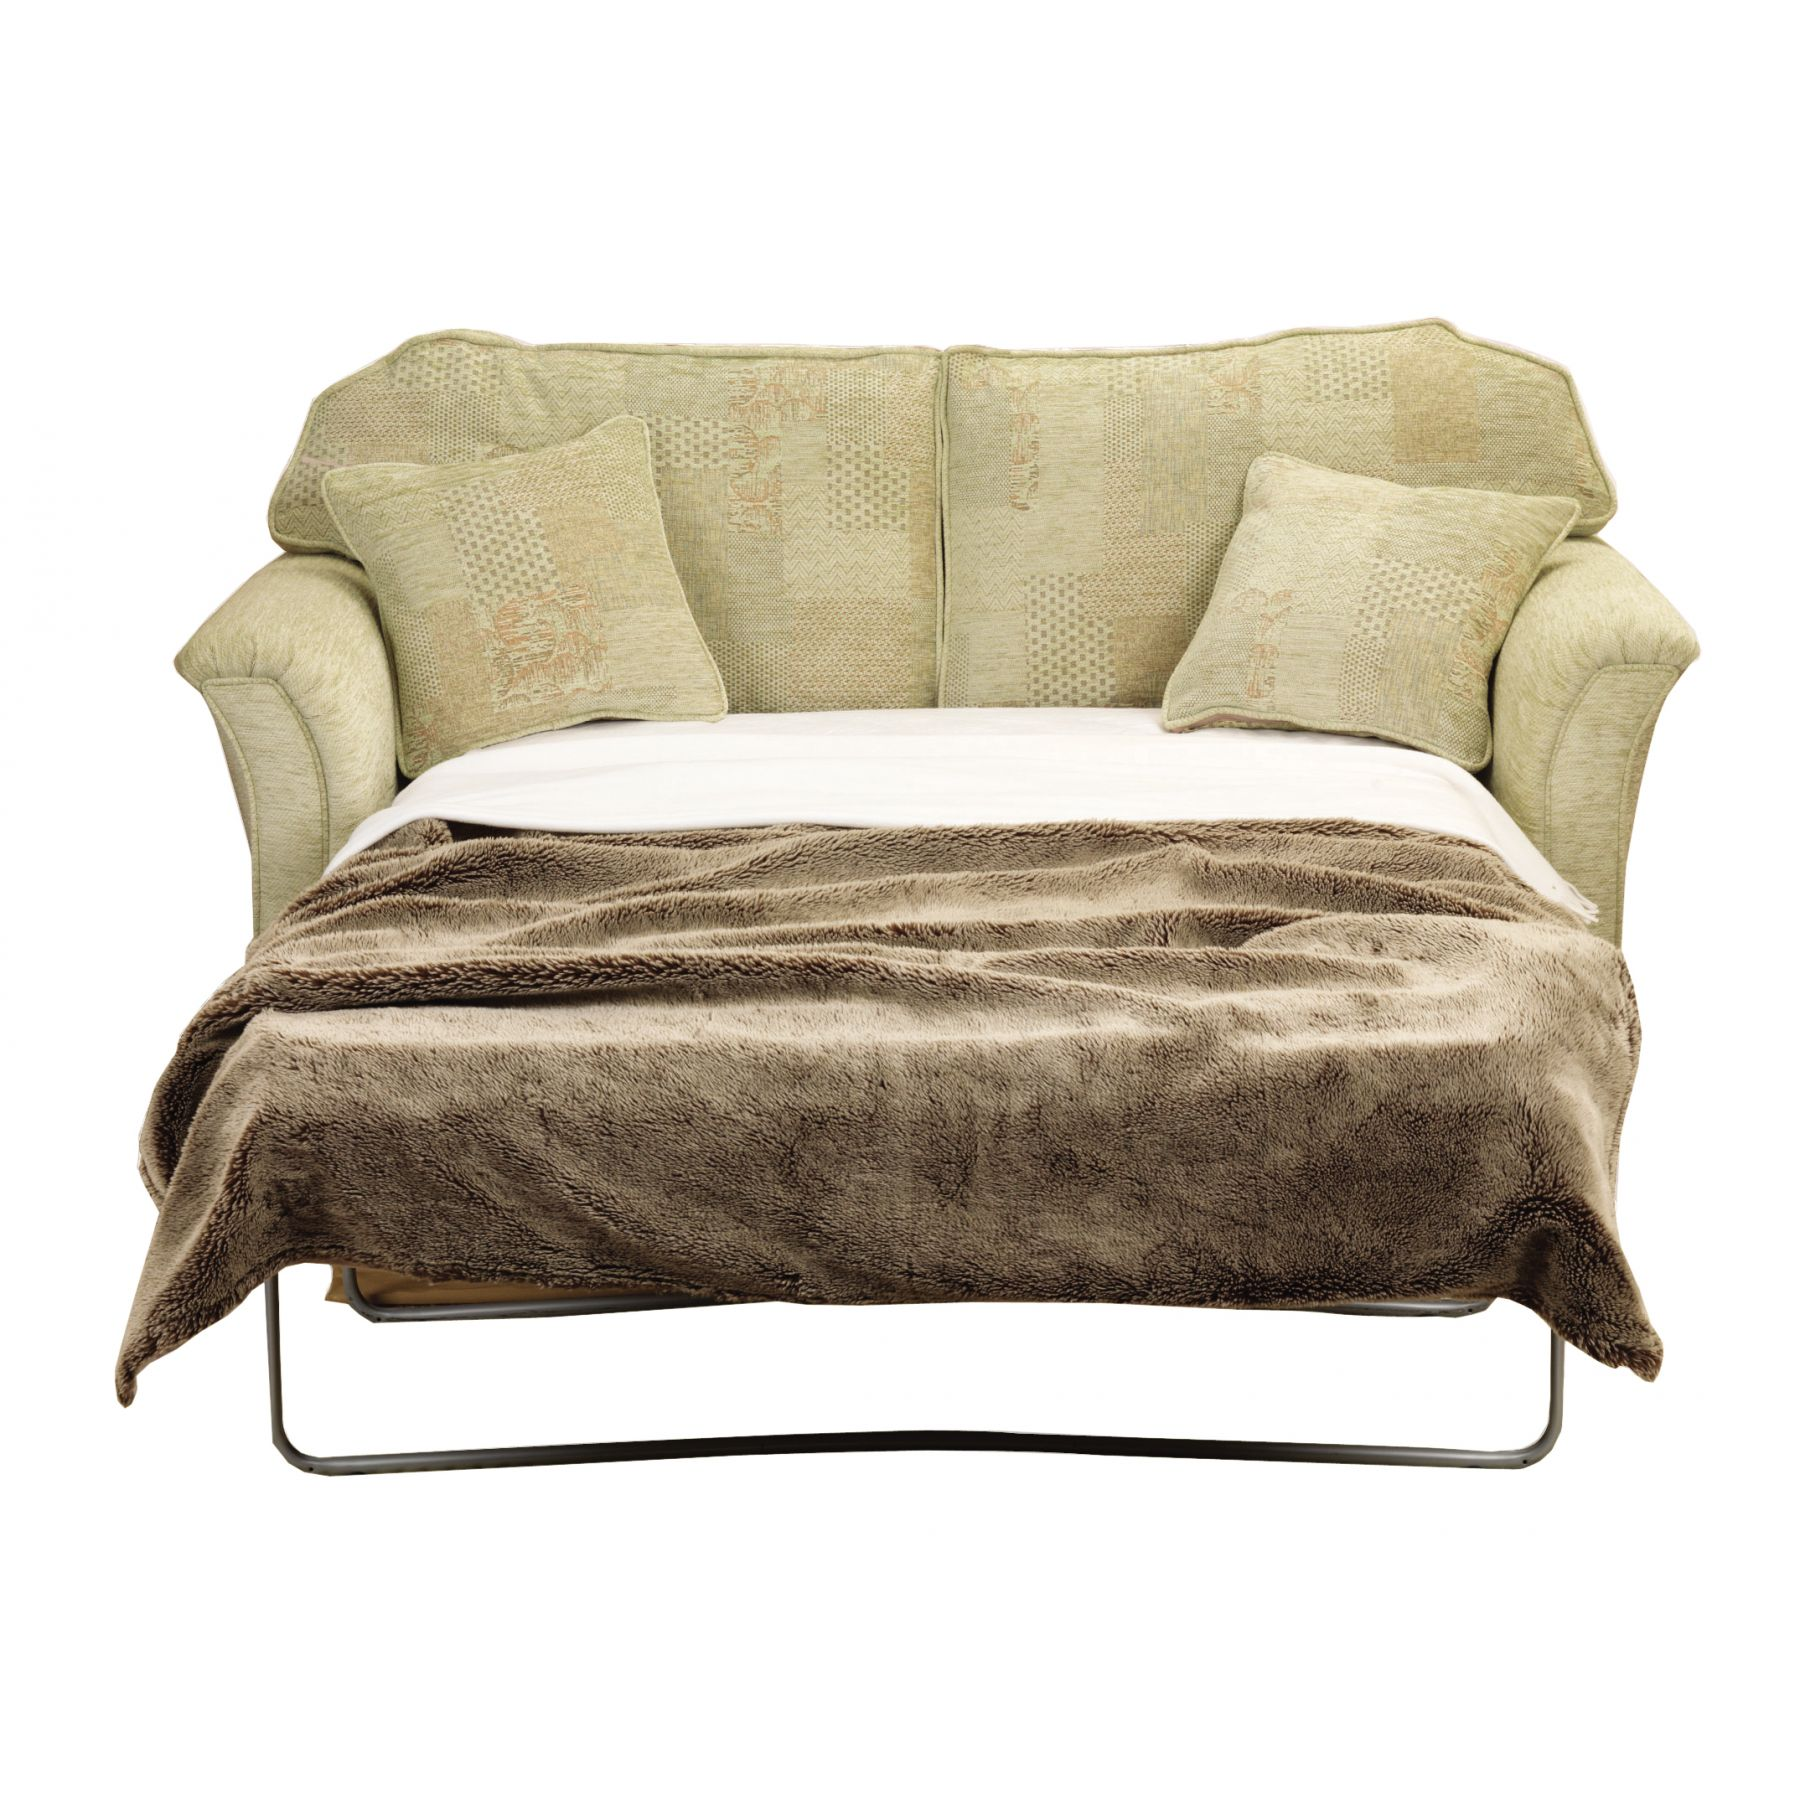 Convertible loveseat sofa bed with chaise couch sofa ideas interior design Couch and bed